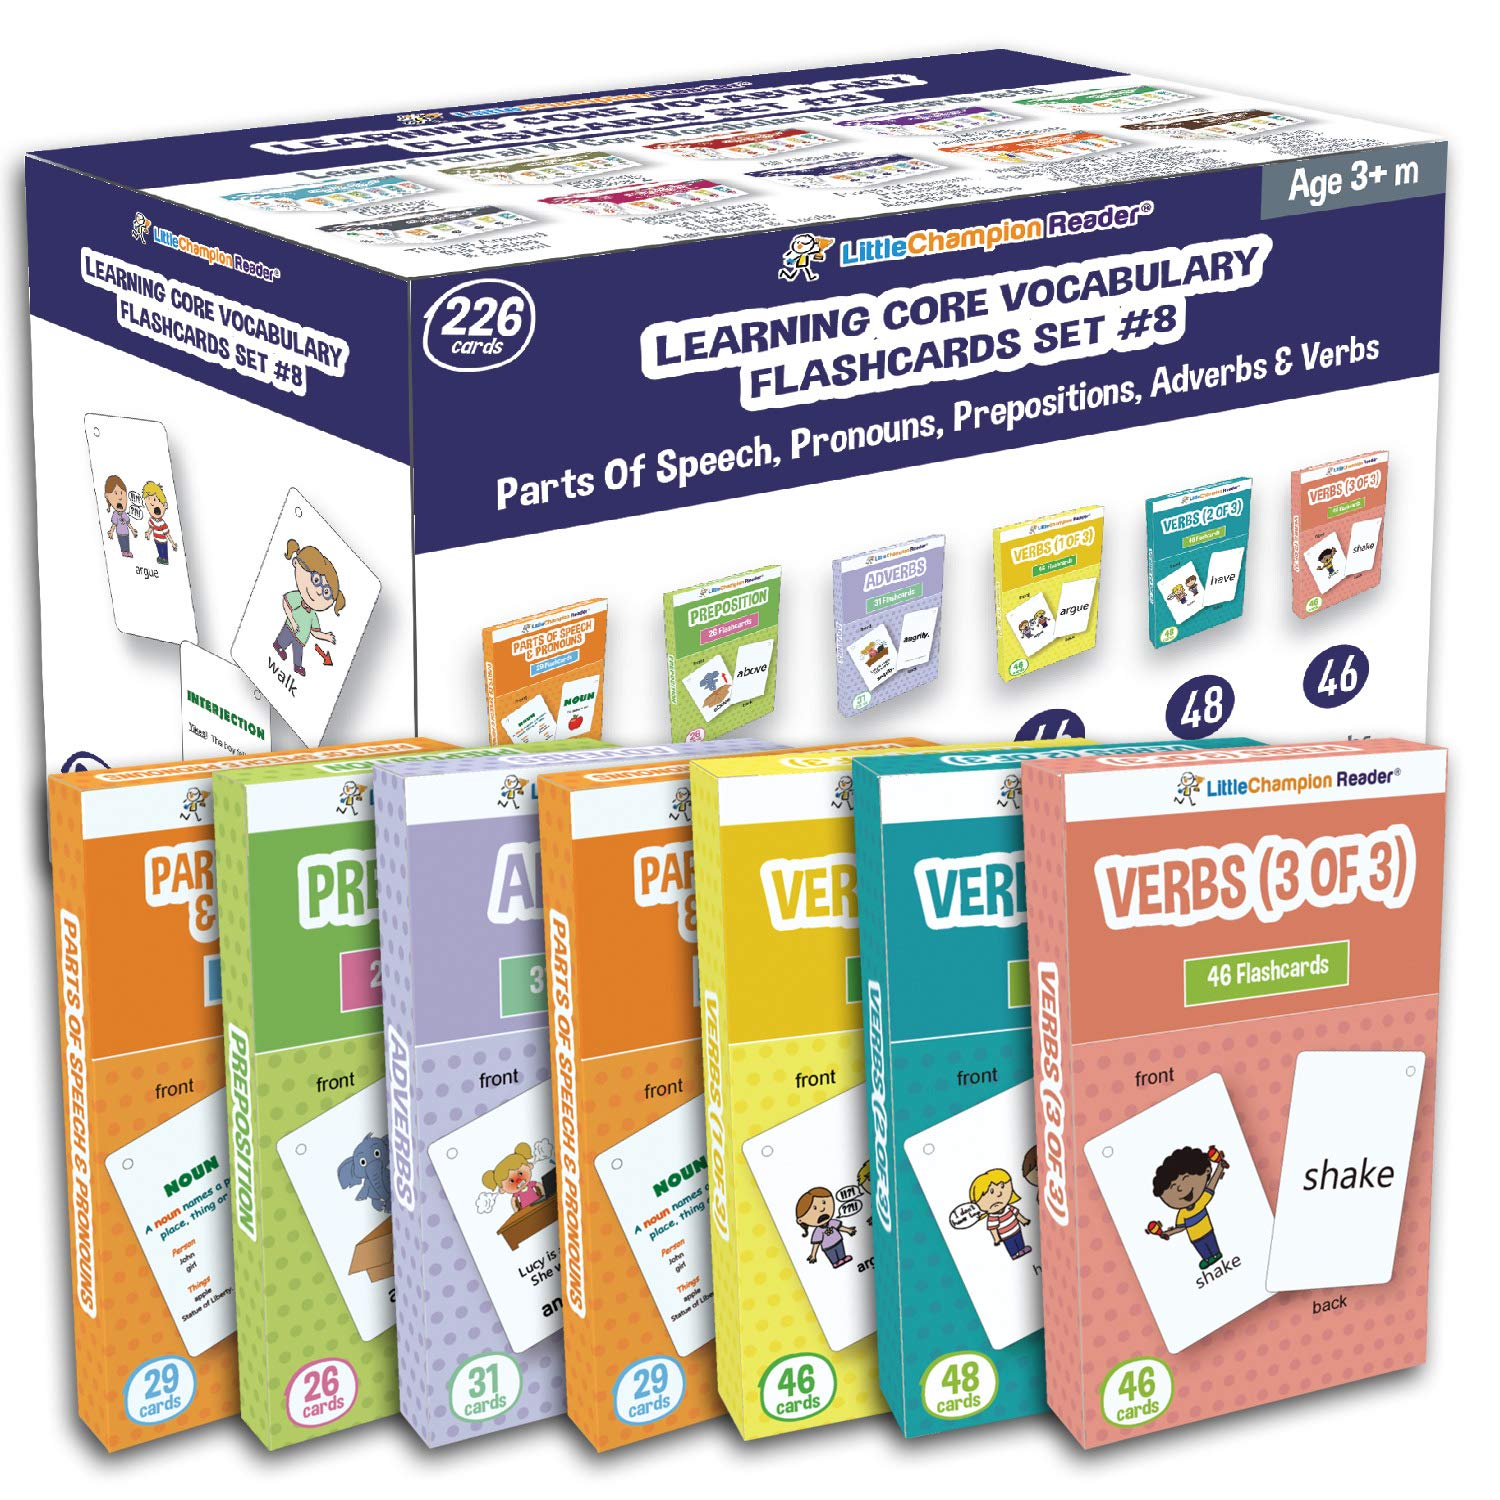 Little Champion Reader Set 8 Flash Cards for Toddlers - 226 Parts of Speech & Pronouns, Adverbs, Preposition and Action Verb Flash Cards - Learning for Baby Toddler Preschool Kindergarten by Little Champion Reader